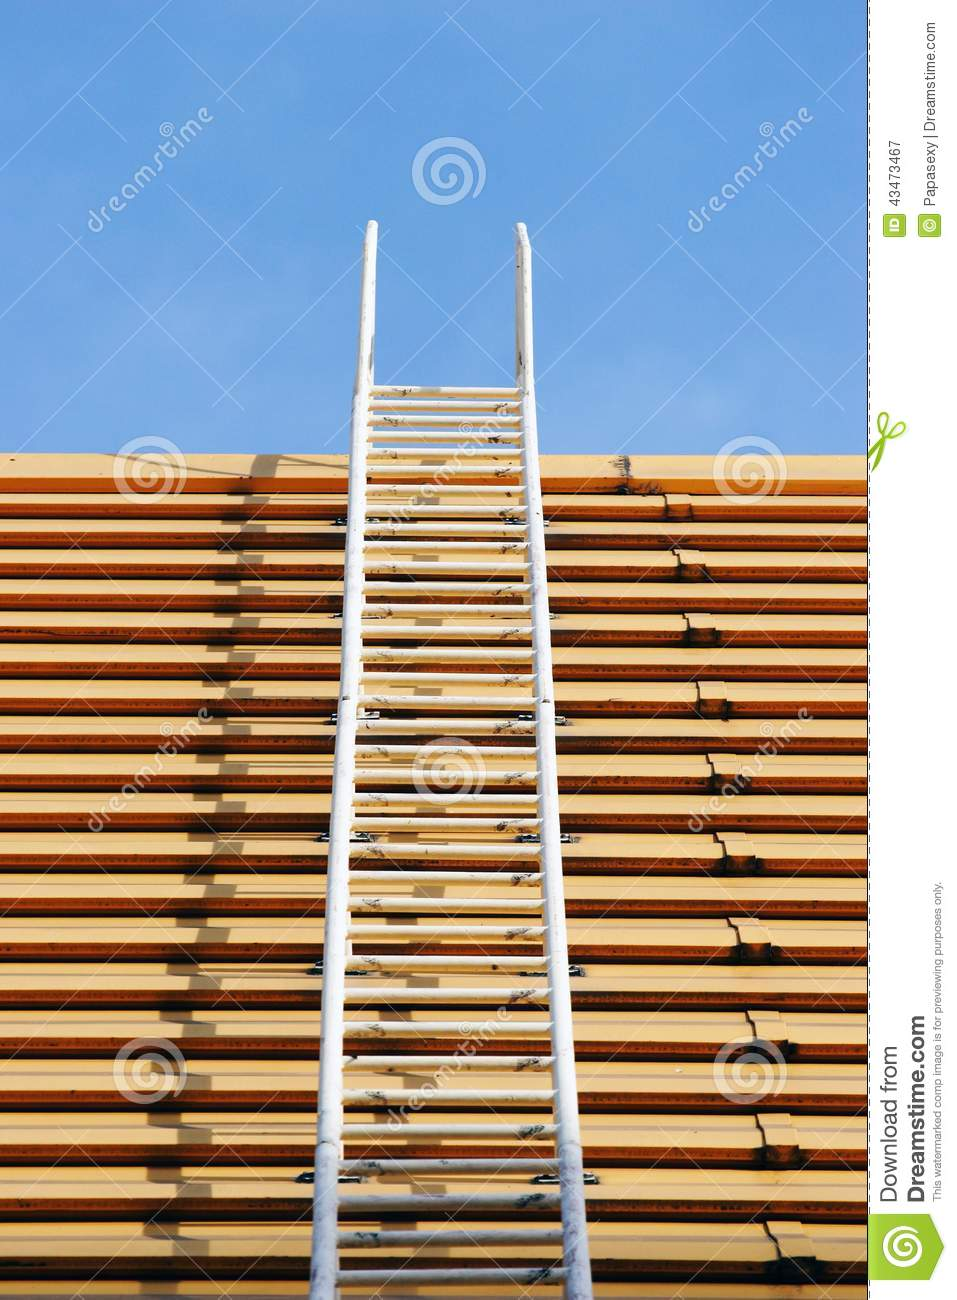 Roof ladder stock image  Image of wall, construction - 43473467